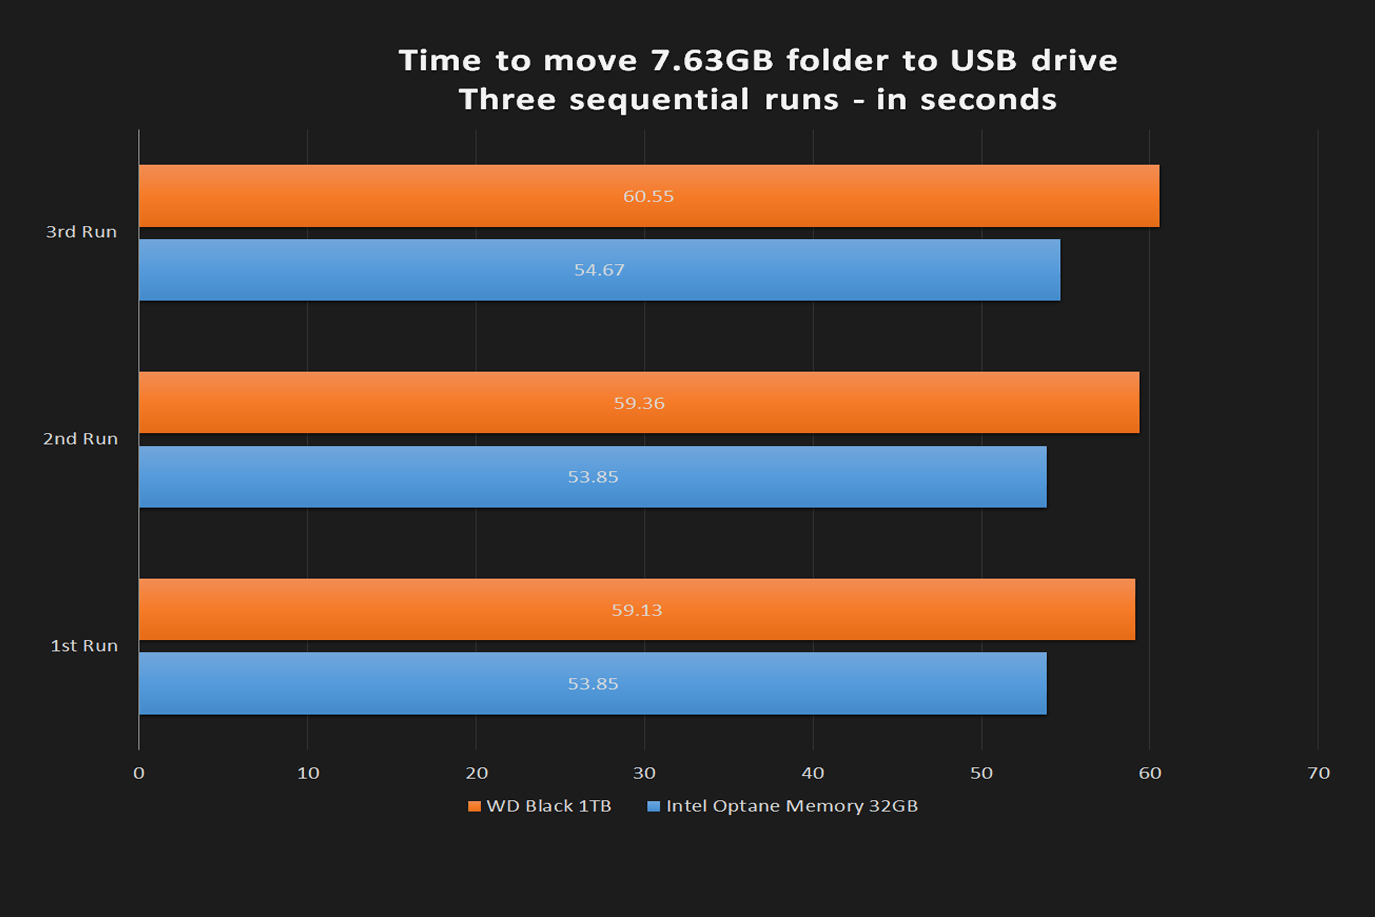 intel optane 32gb review time to move large file usb